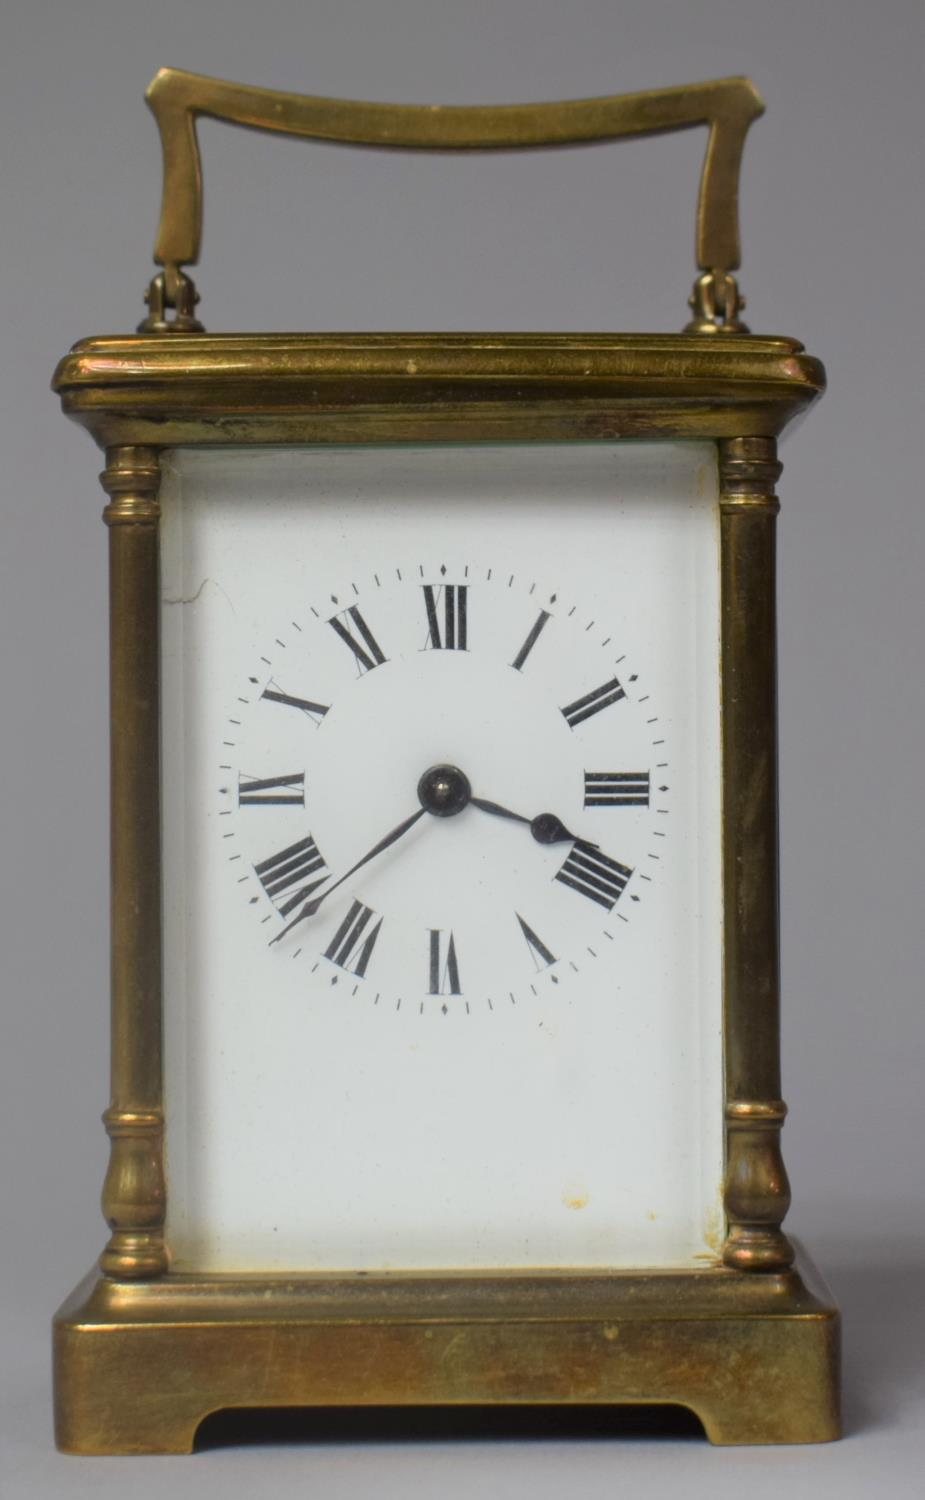 An Early/Mid 20th Century Brass Cased French Carriage Clock, Movement In Need of Attention, 12.5cm